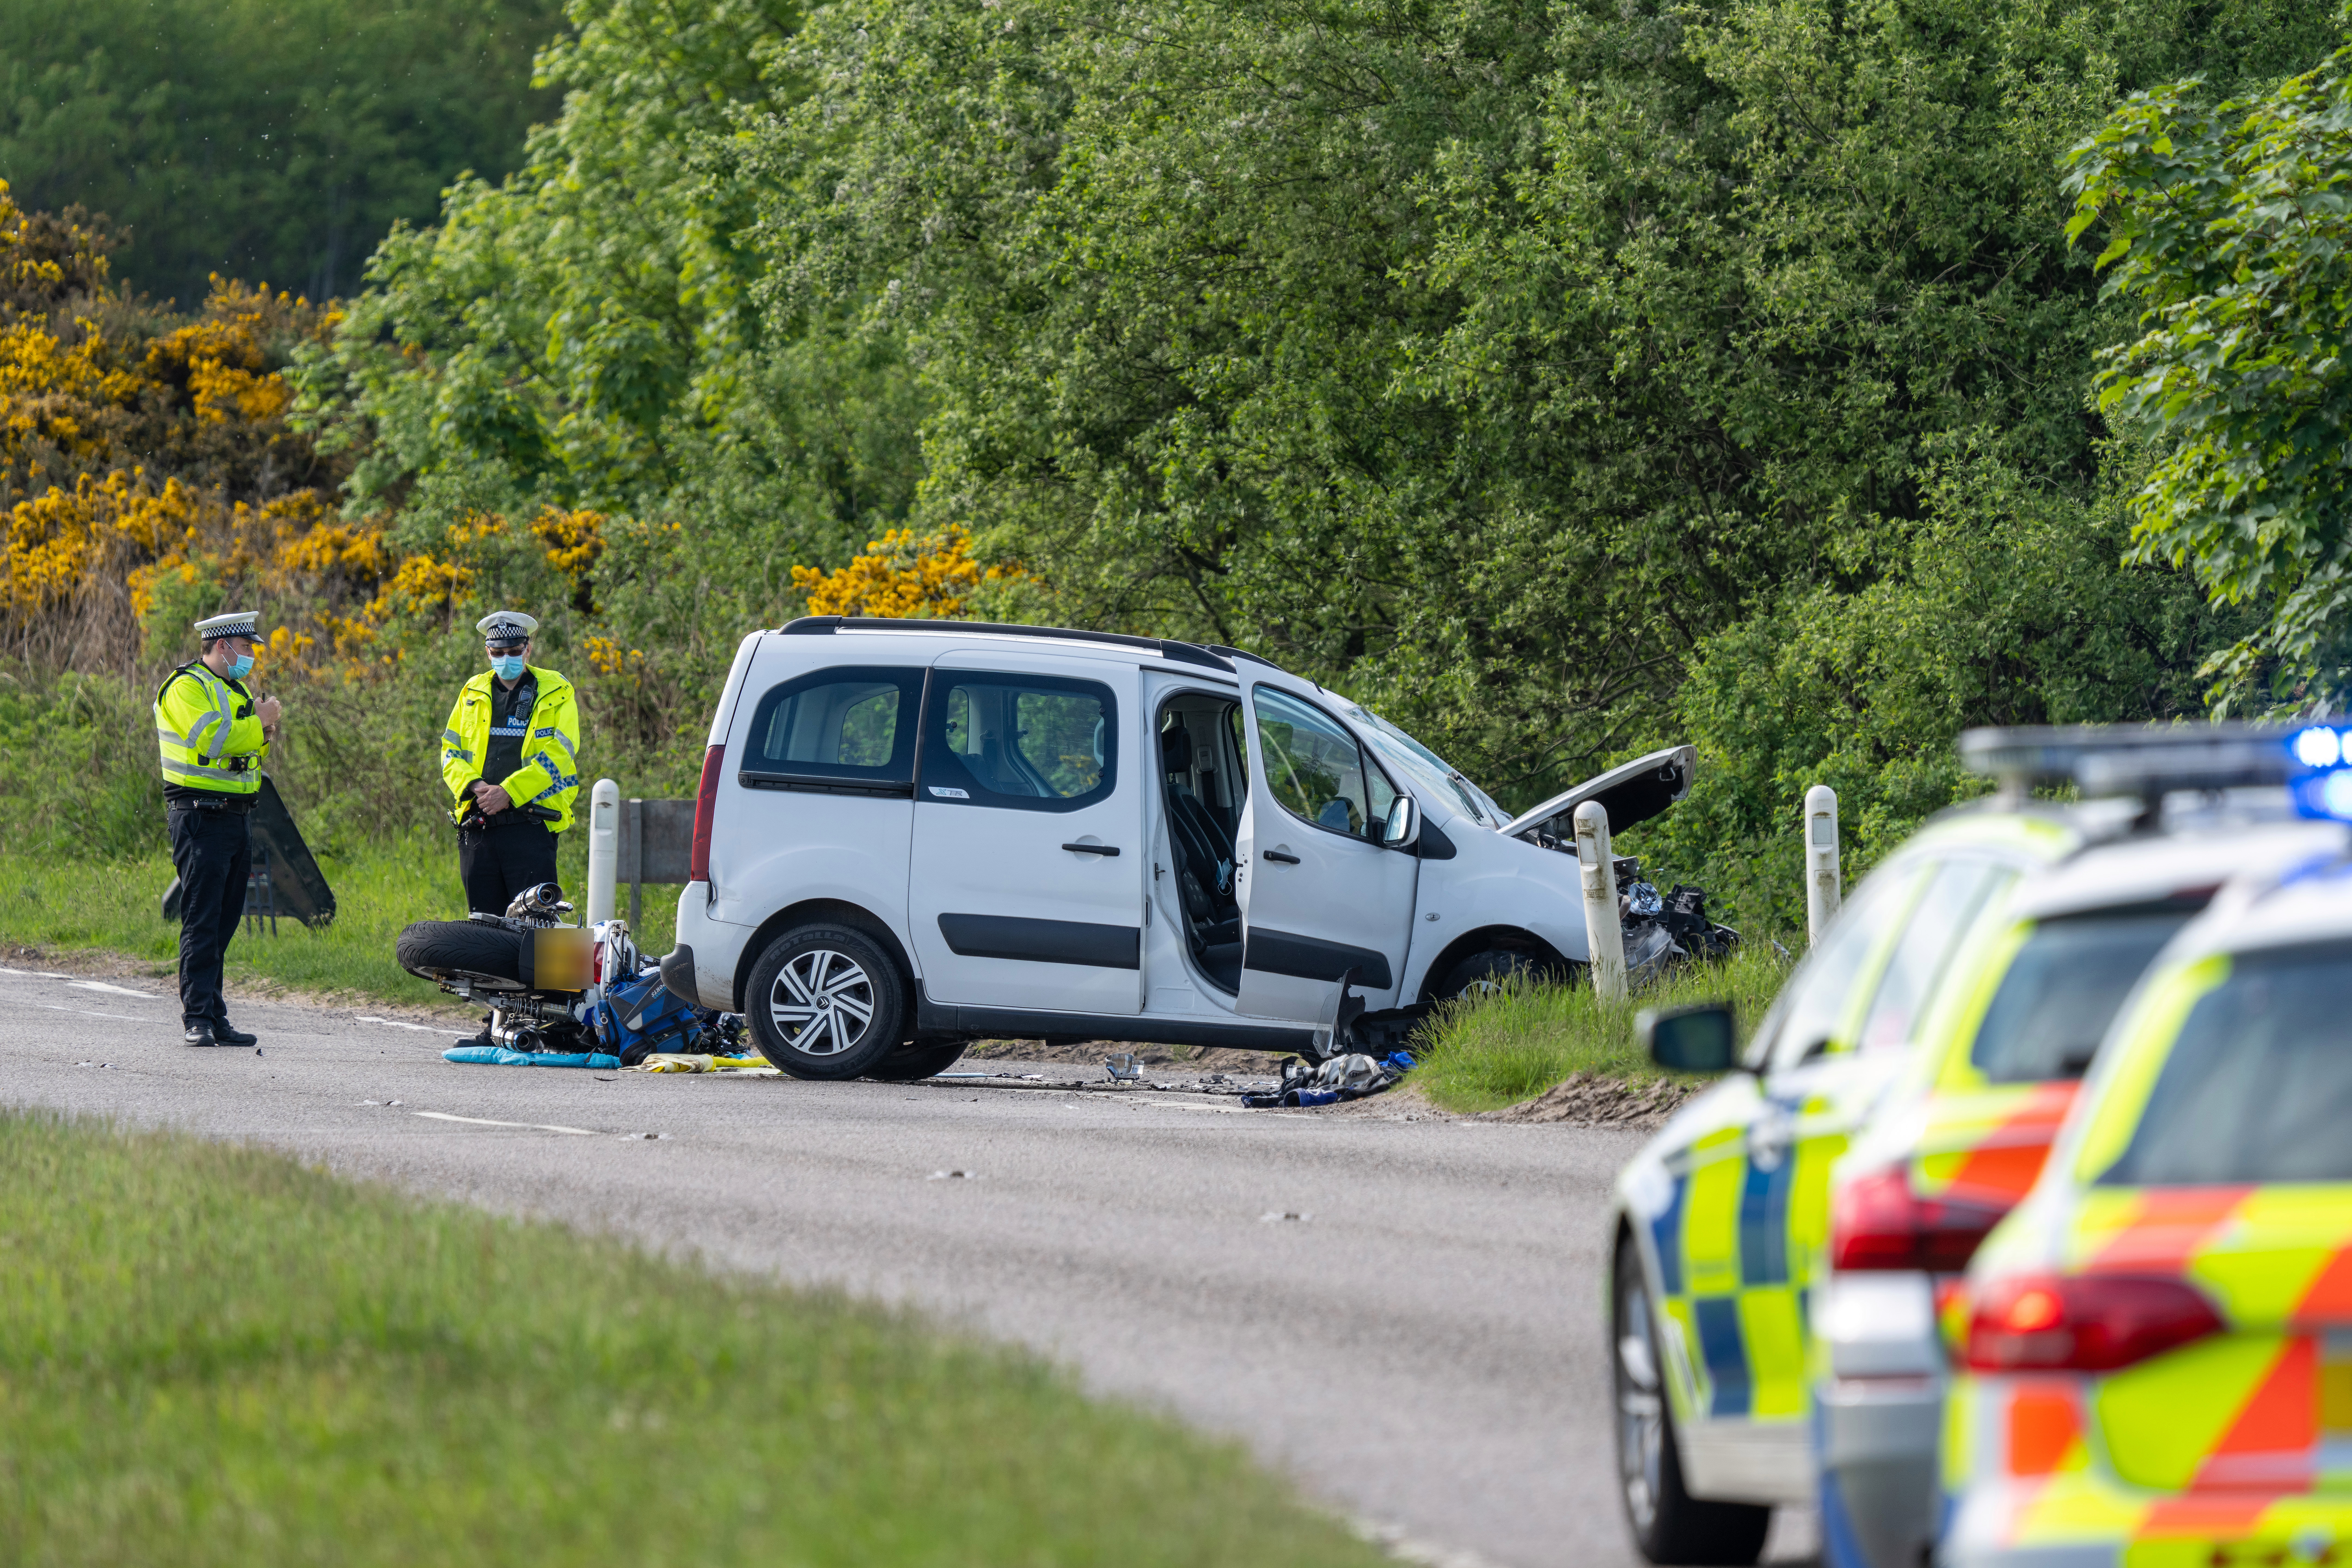 A motorbike and a van collided near Elgin